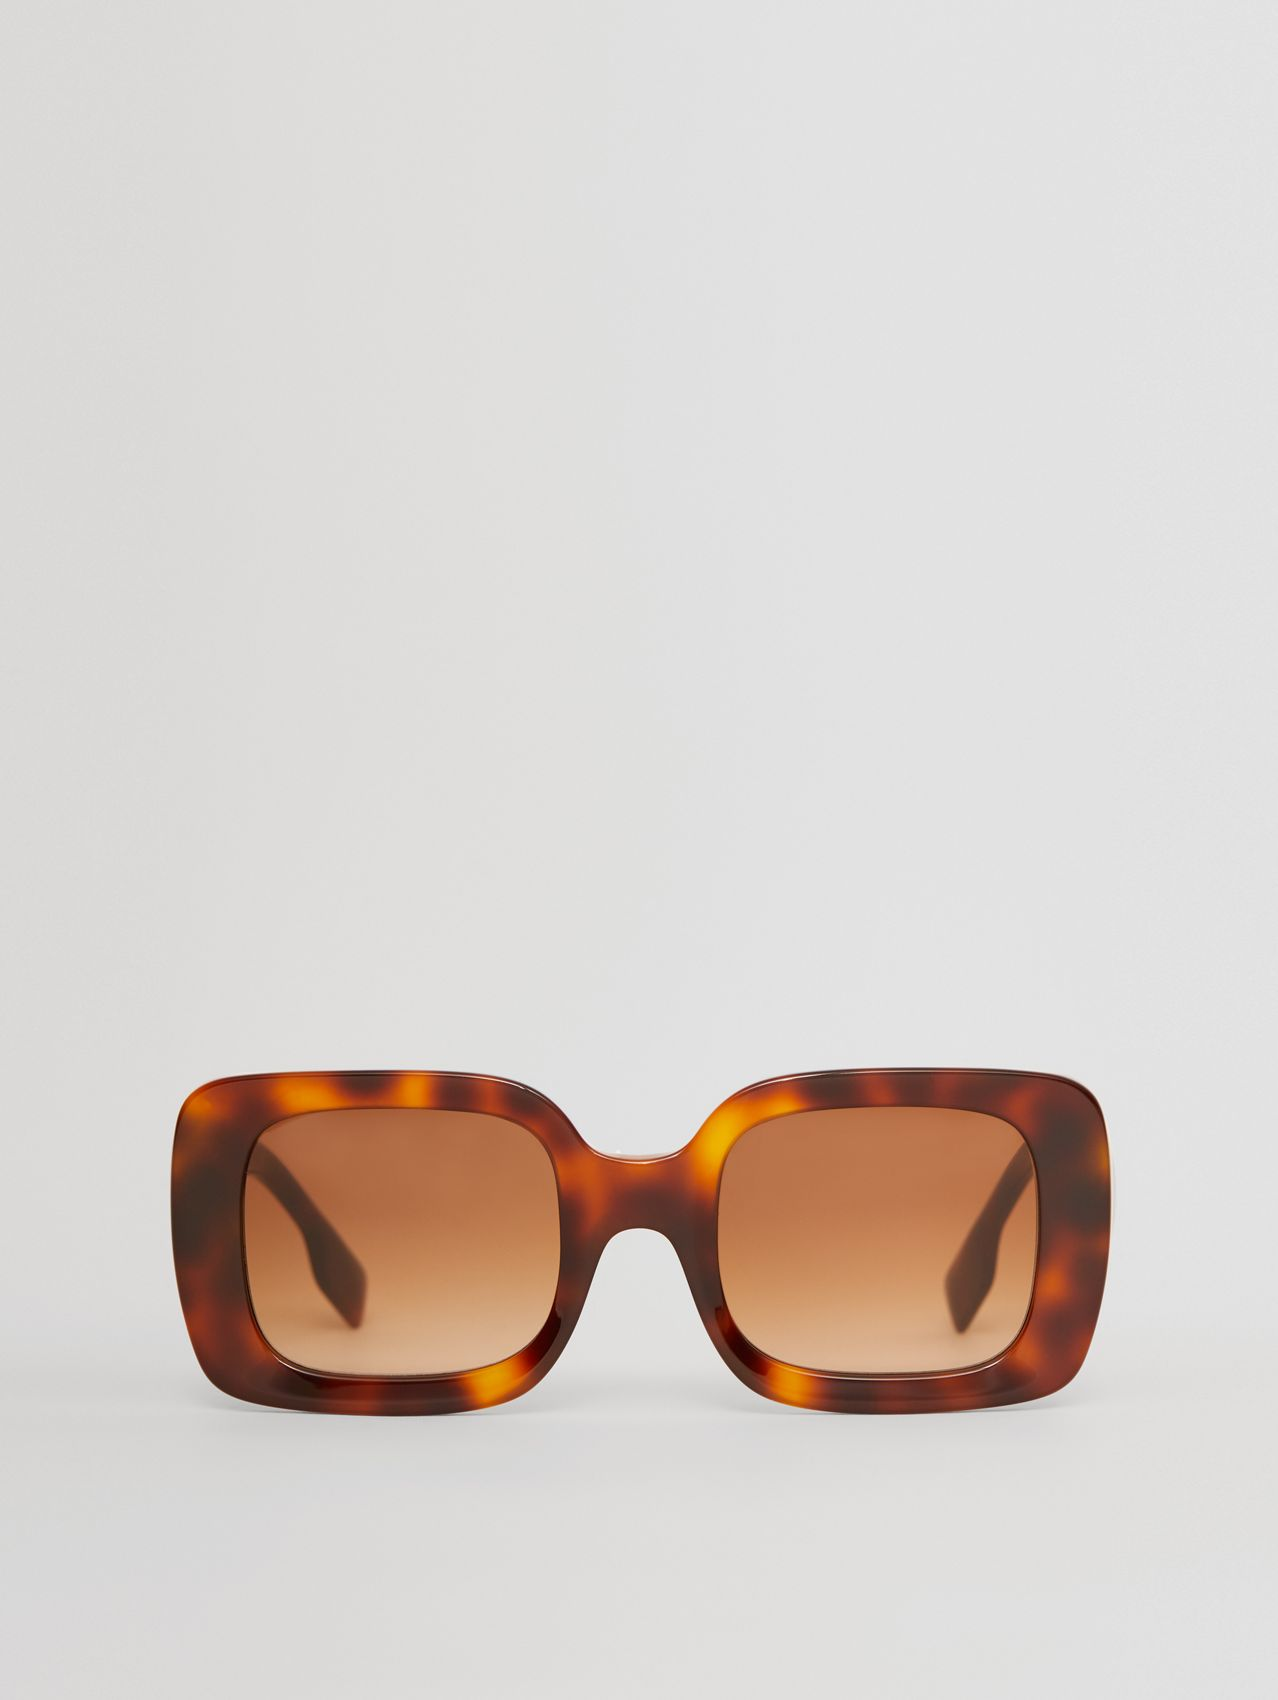 Monogram Motif Square Frame Sunglasses in Dark Tortoiseshell Amber